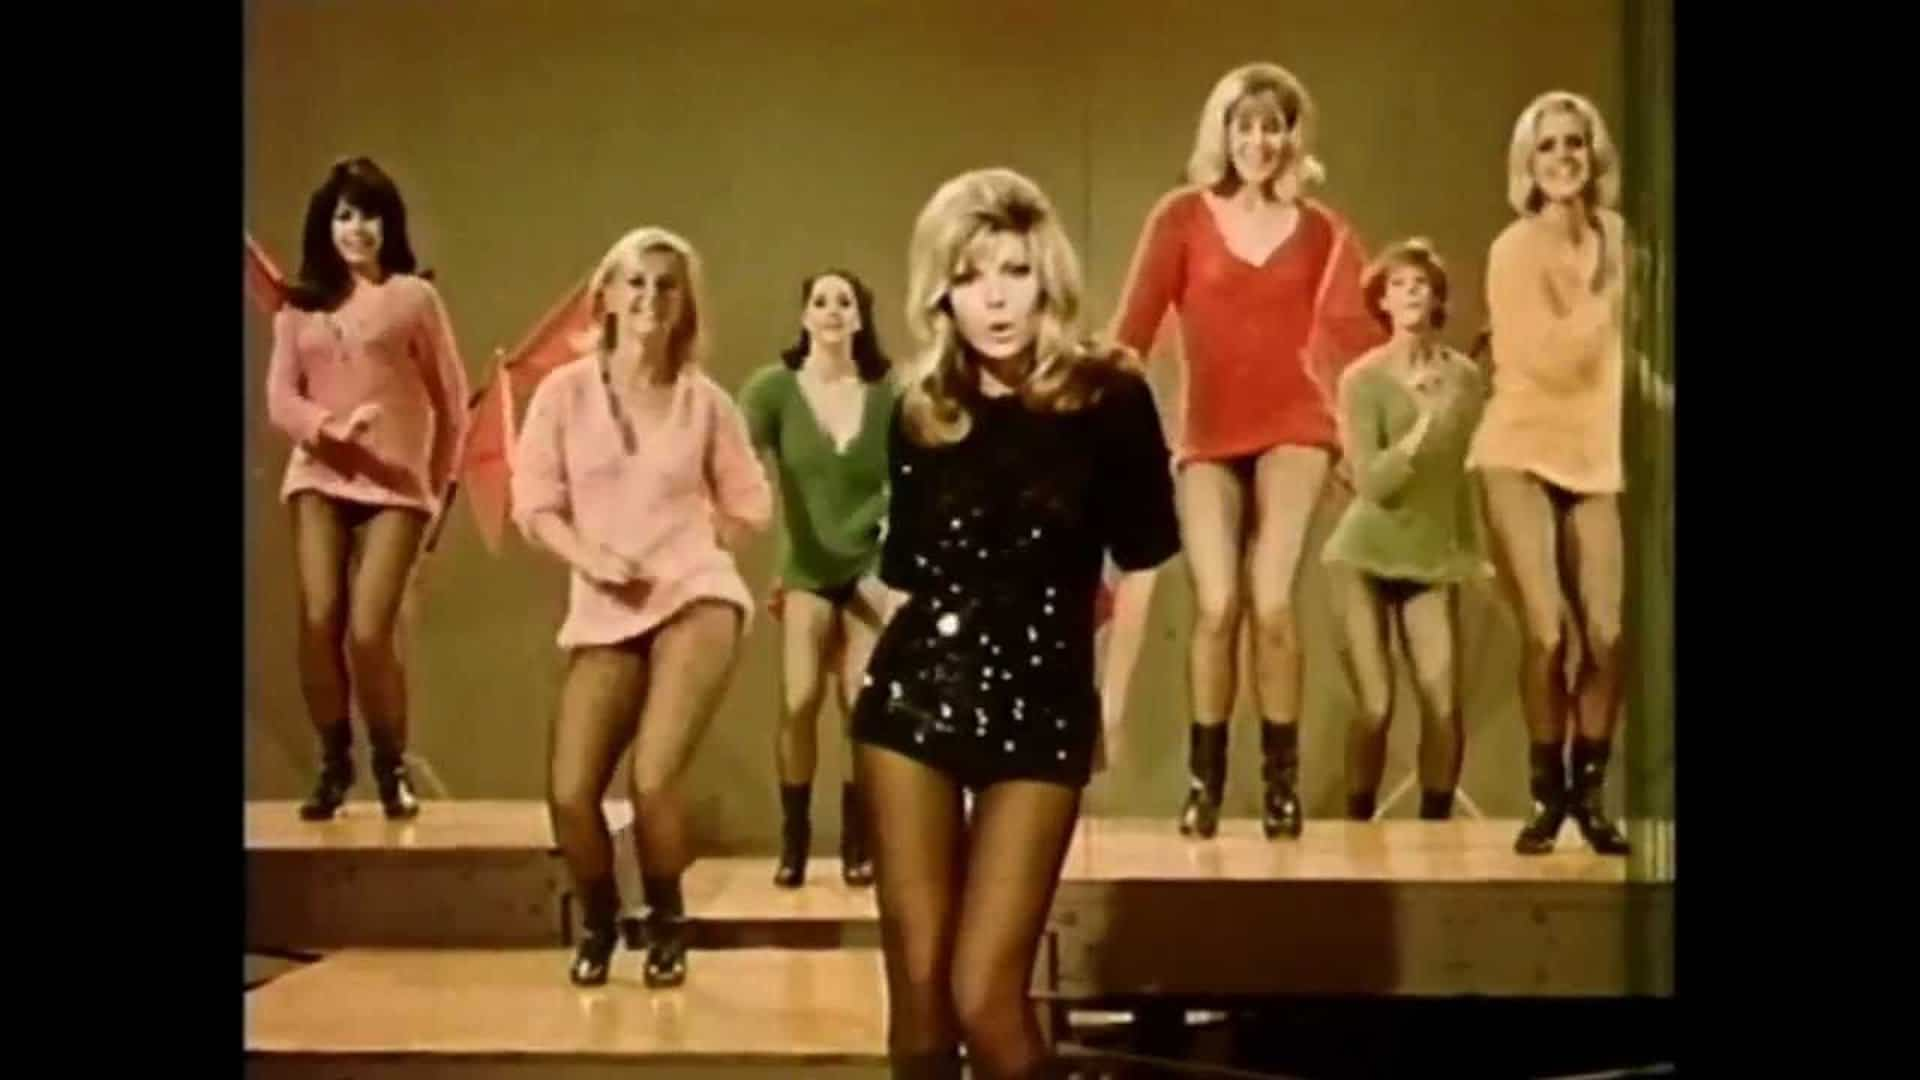 These boots are made for walking - Nancy Sinatra